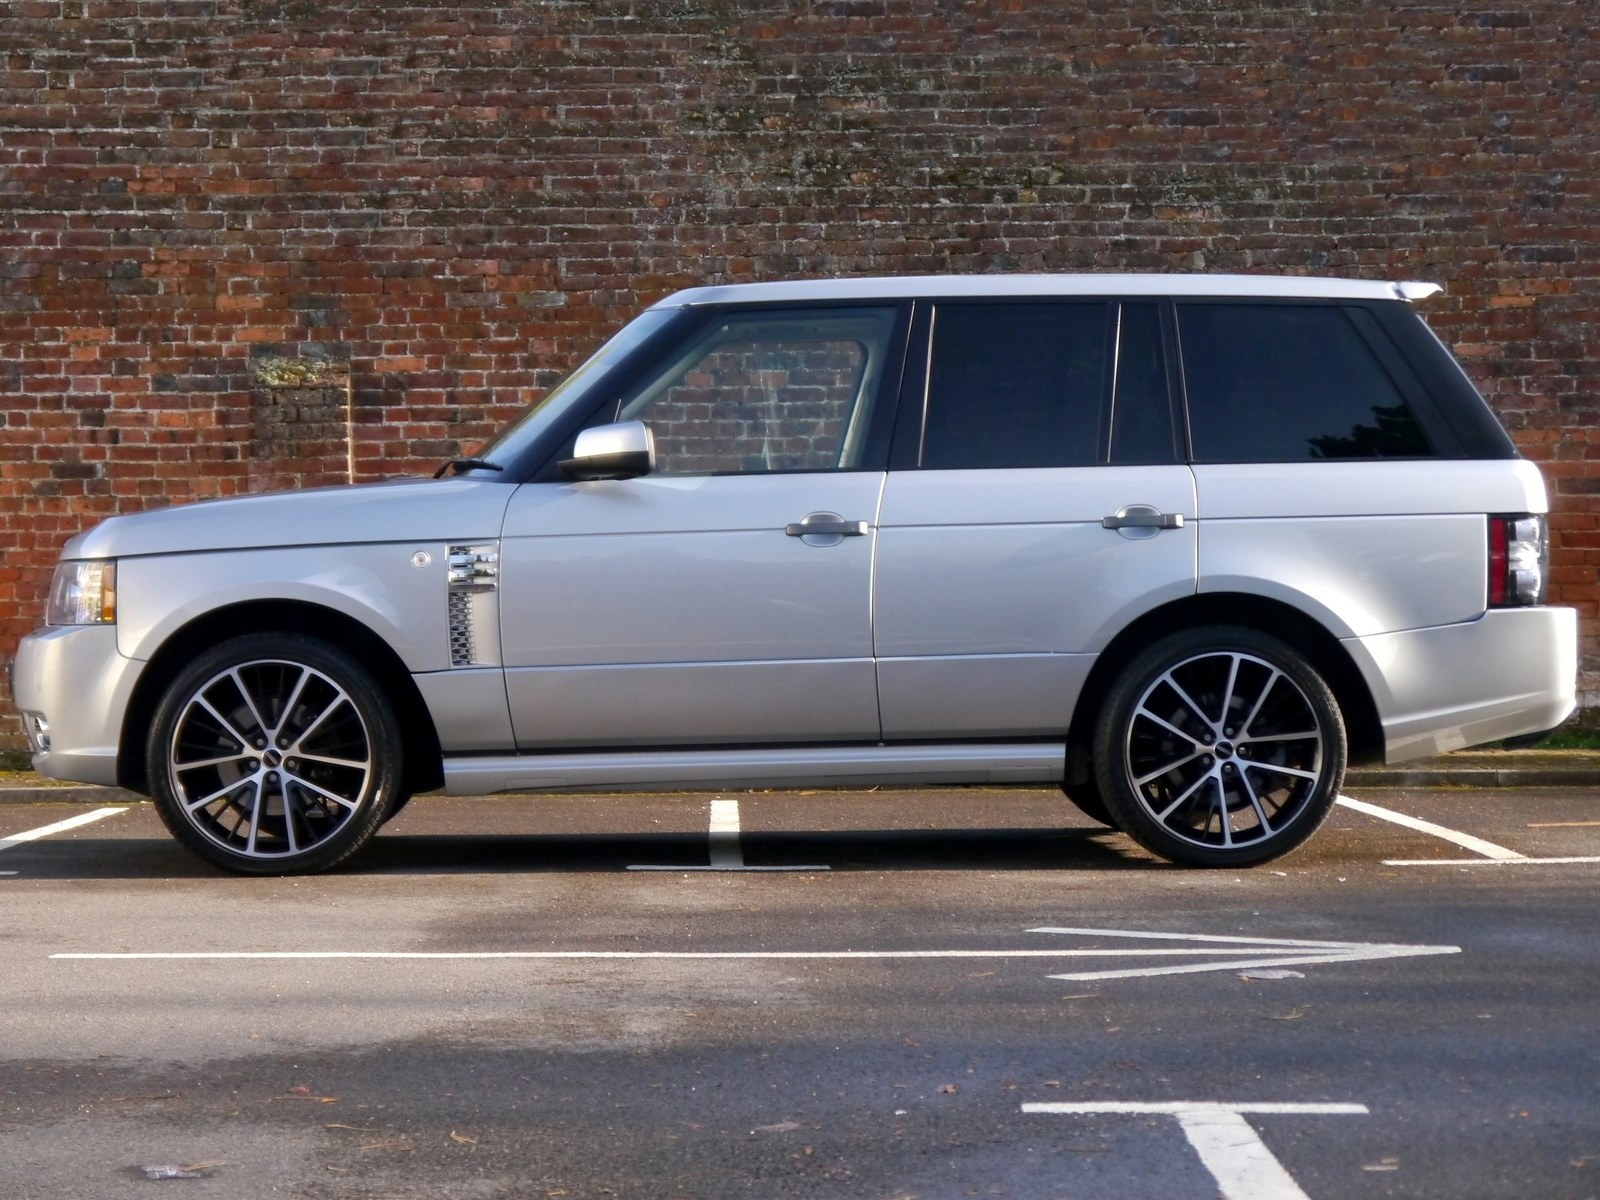 Range Rover Interior >> Land Rover Range Rover Vogue TDV8 - OVERFINCH Body Styling - 22'' Alloys for Sale